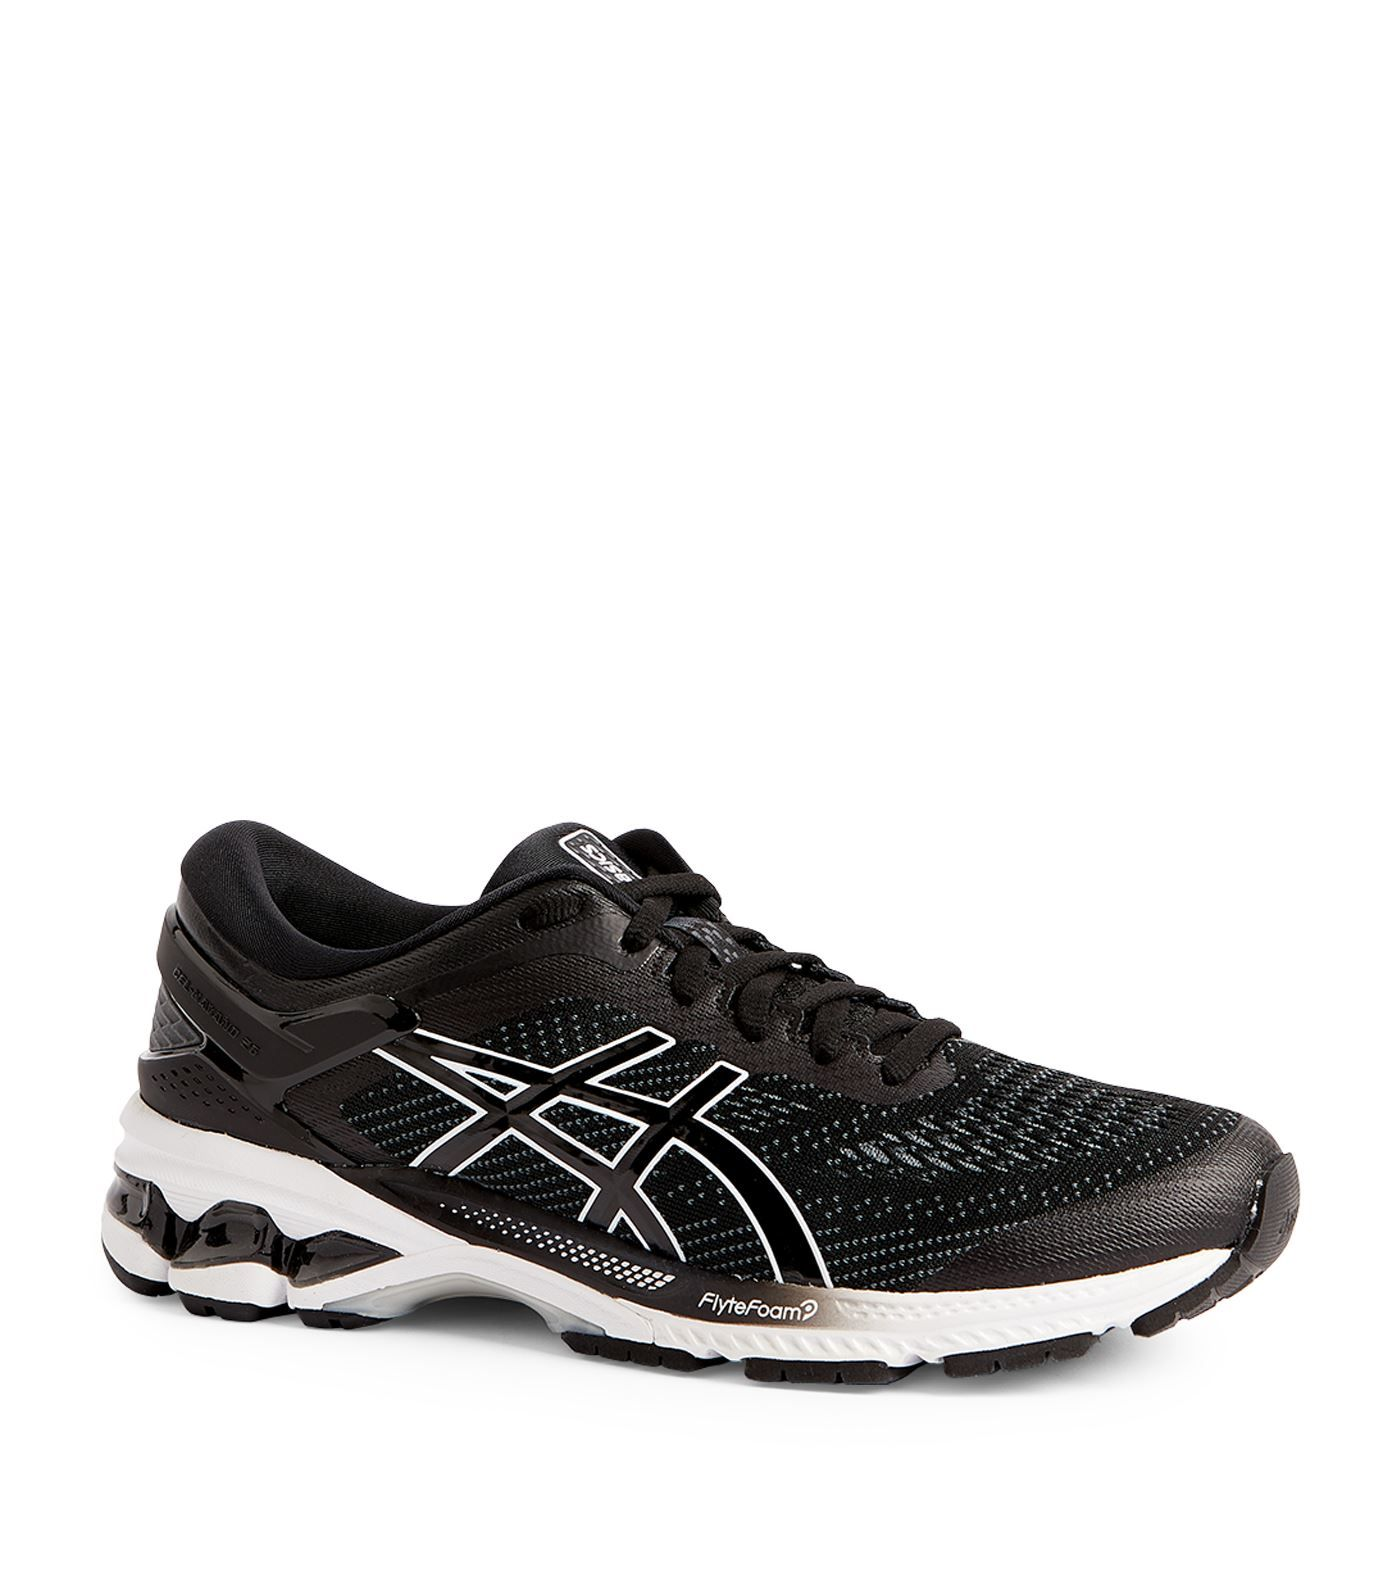 Gel- Kayano 26 Trainers in 2020 | Asics, Black asics, Asics ...